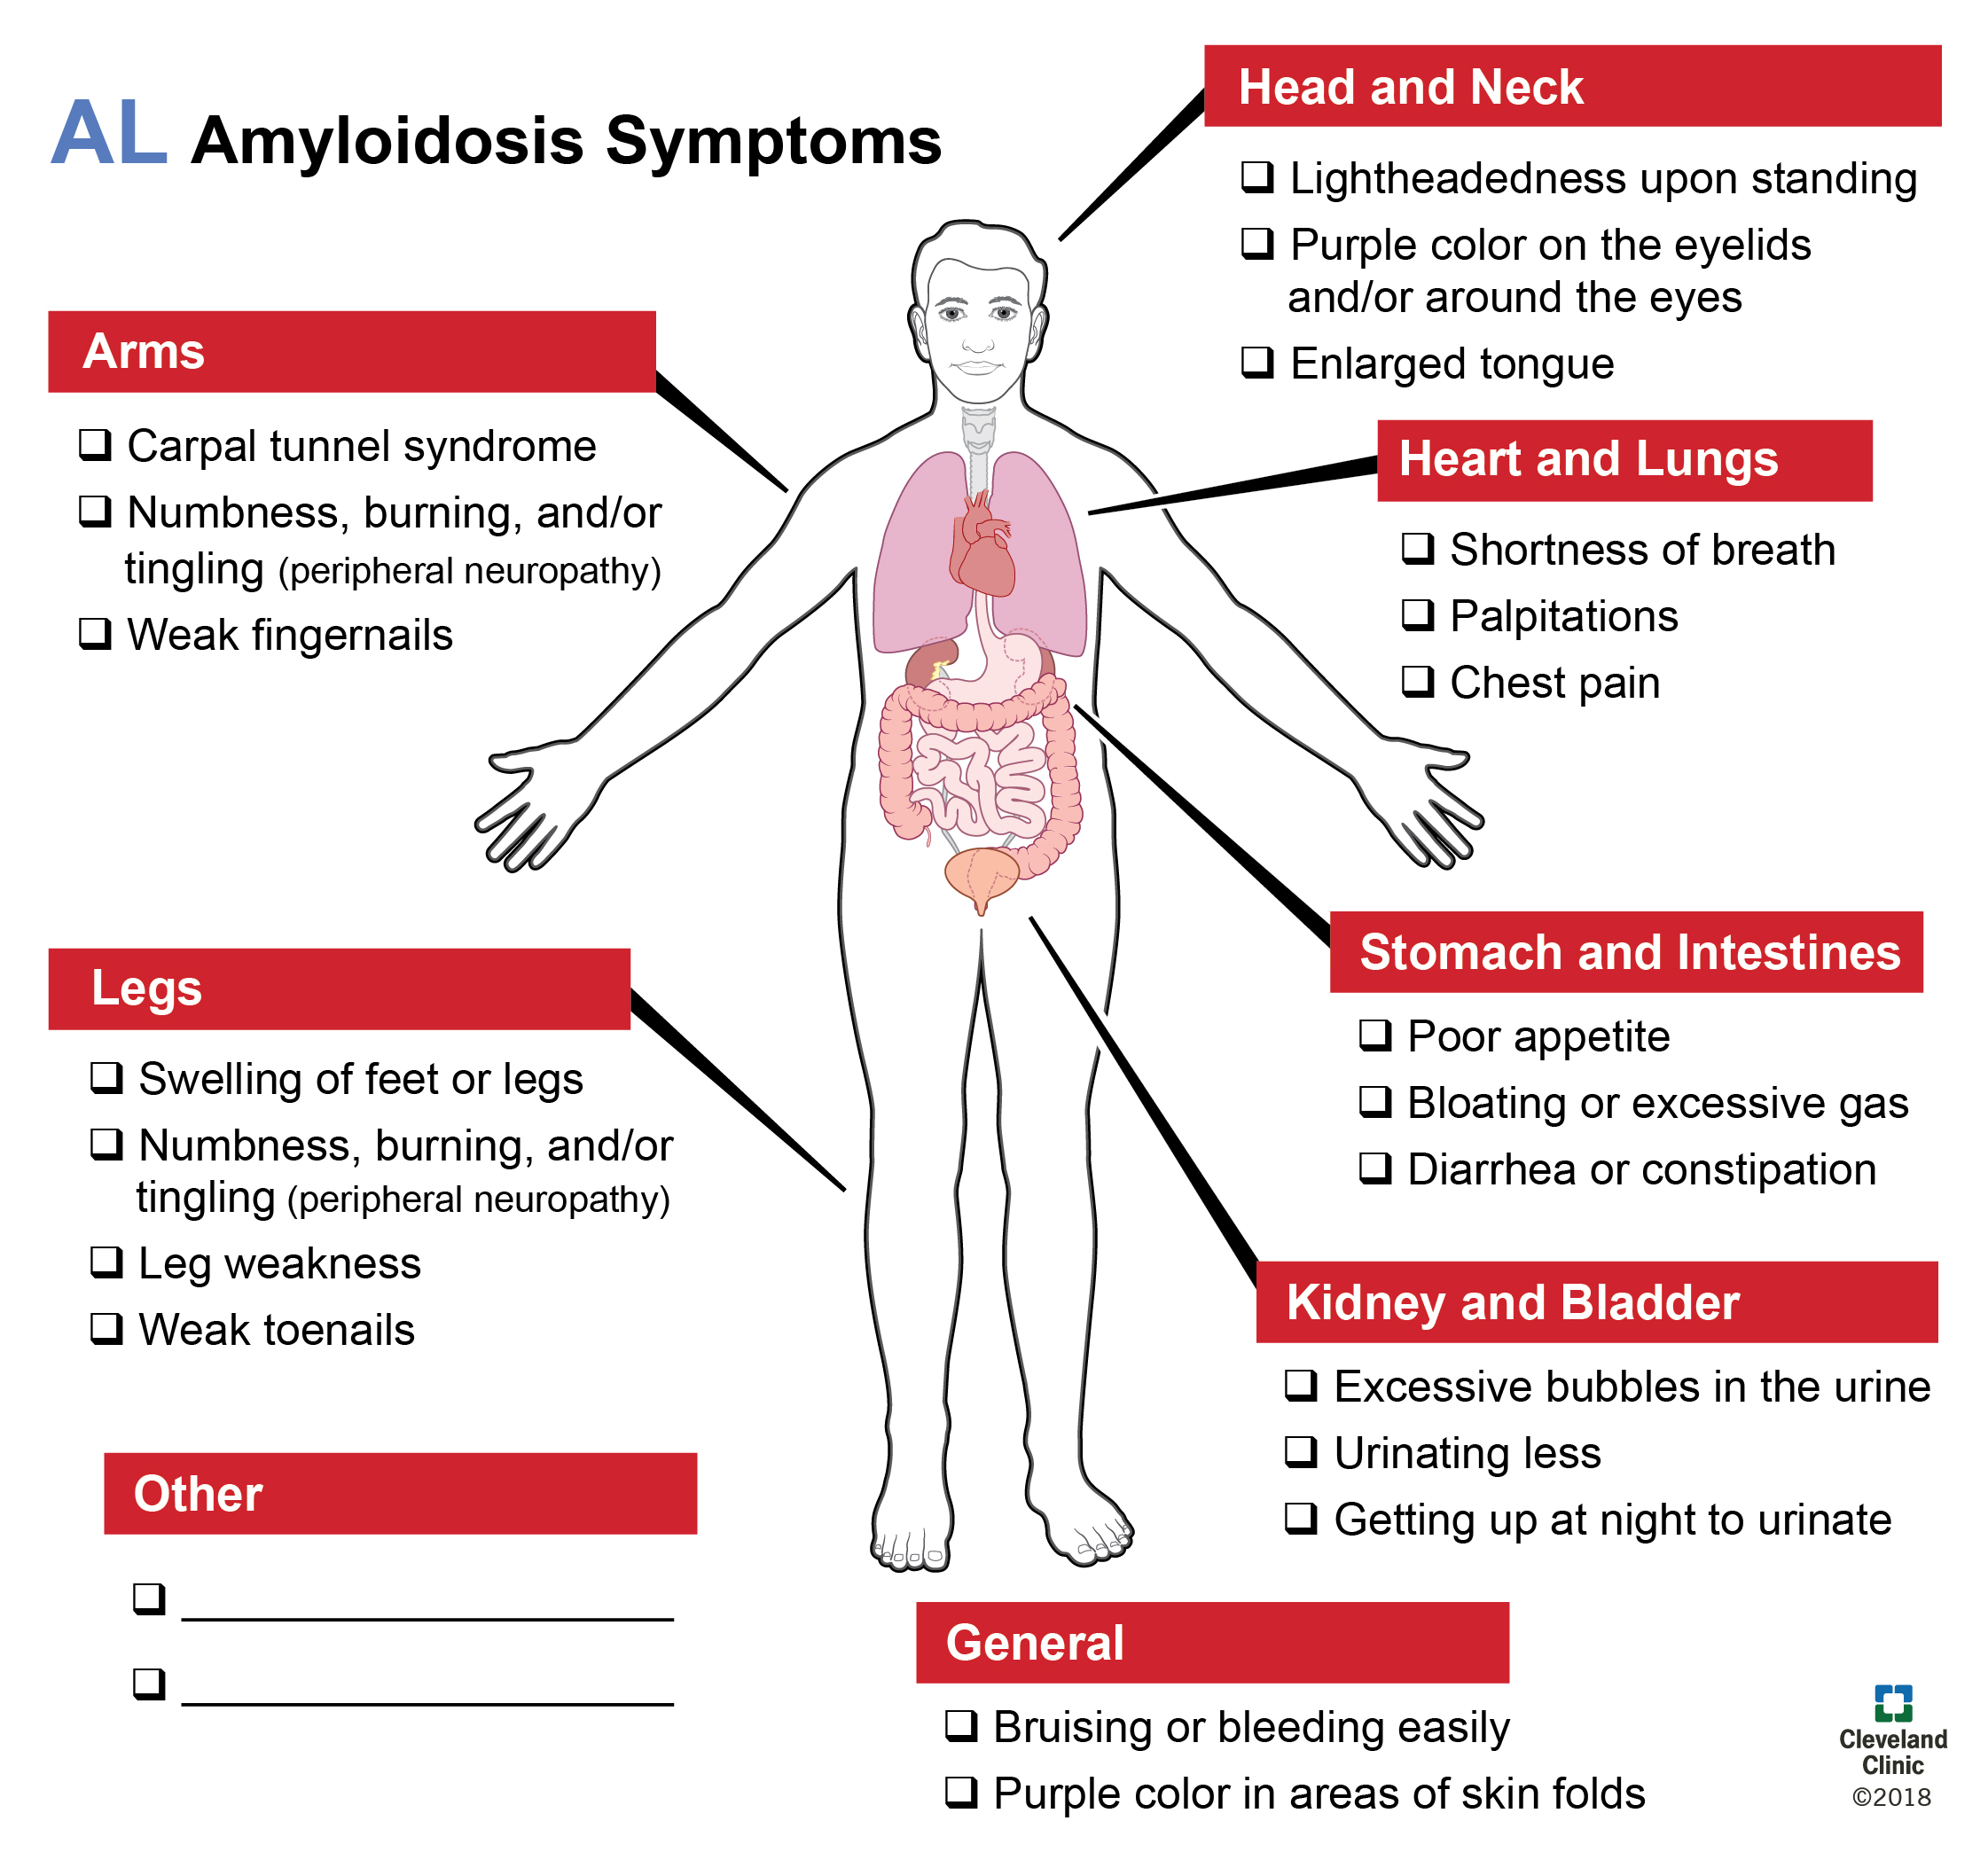 Amyloidosis AL Symptoms